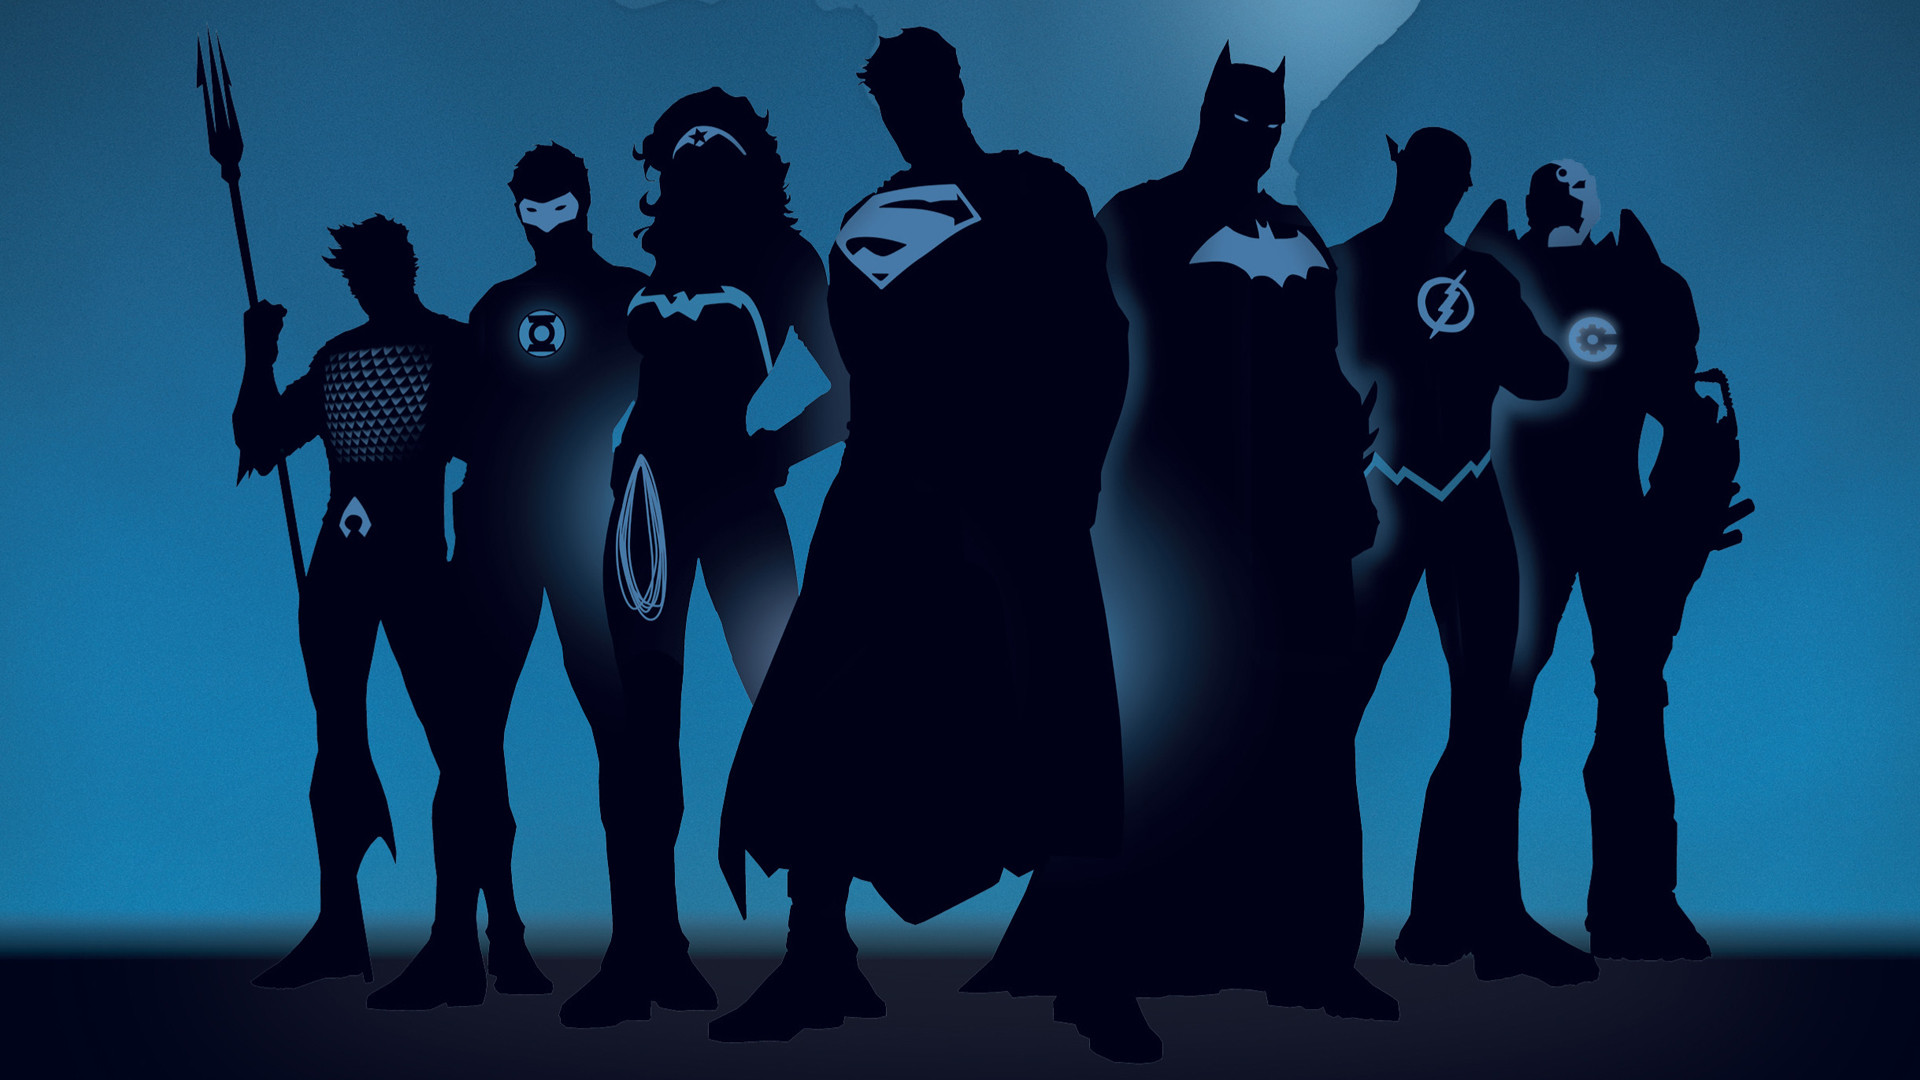 Super Heroes in God's League of Justice